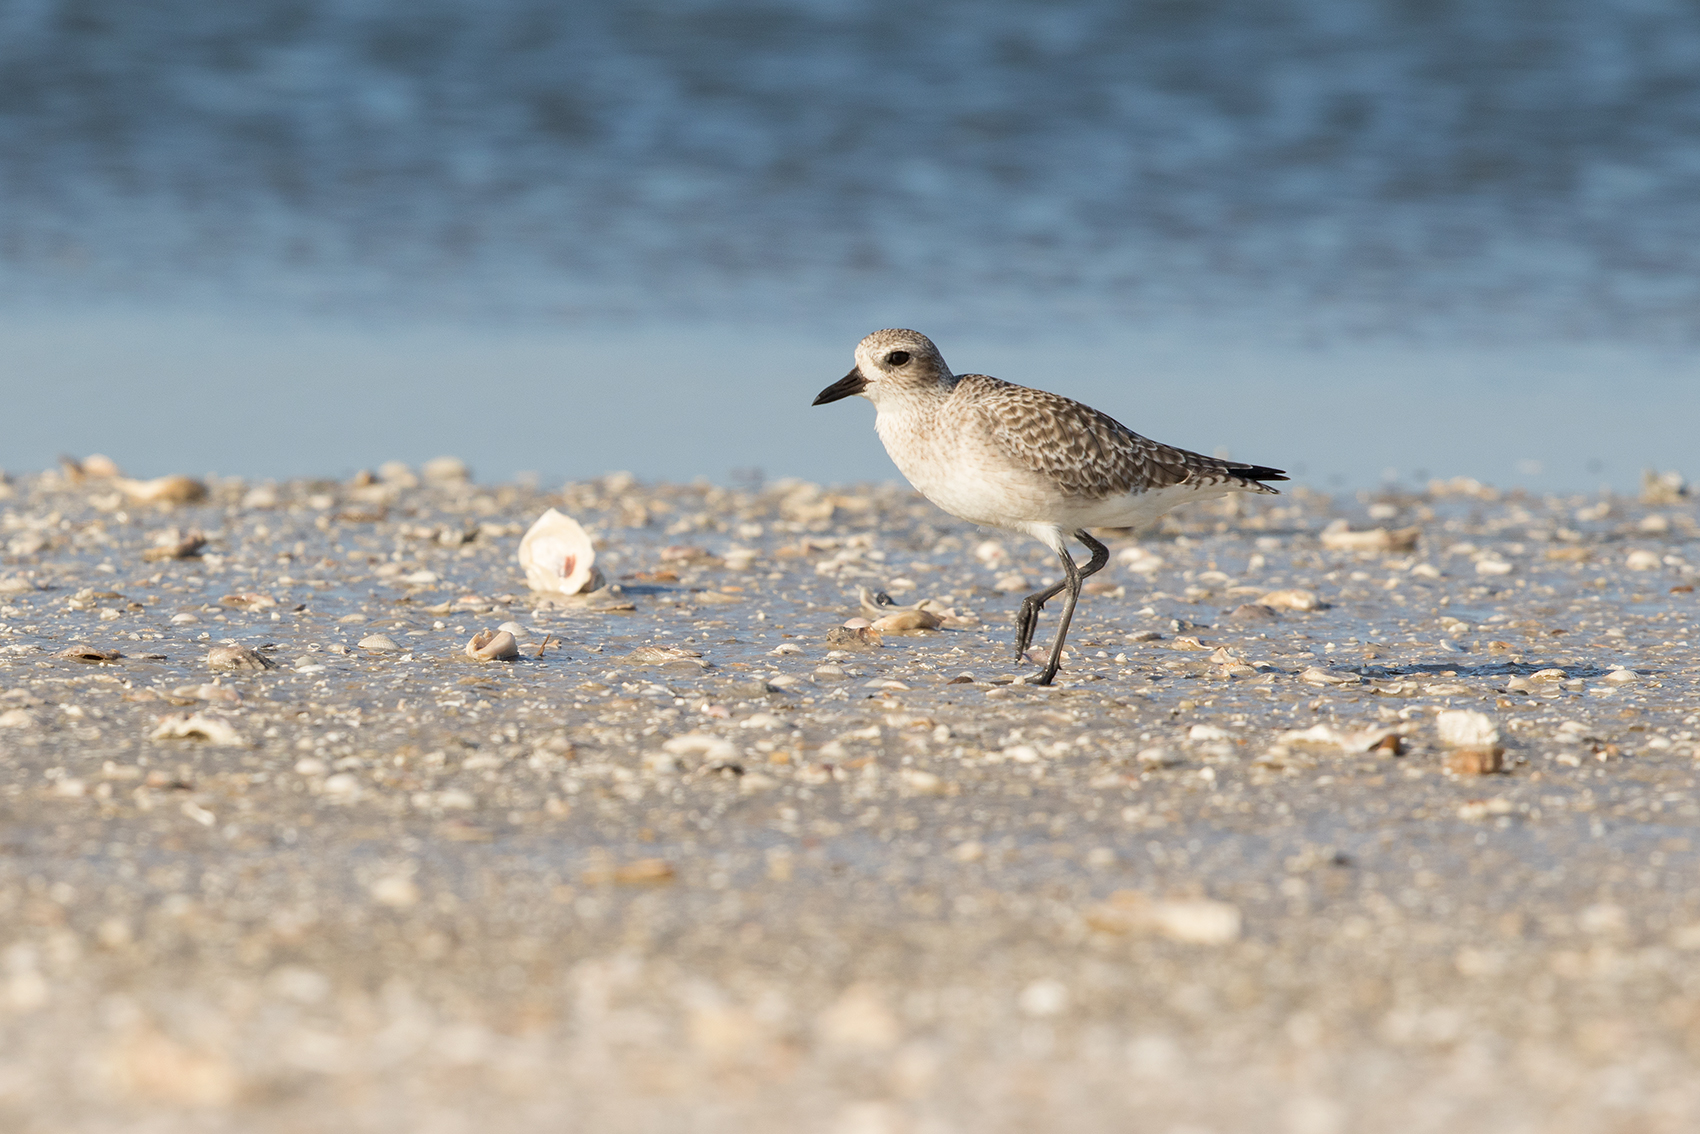 BLACK-BELLIED PLOVER - ARANSAS COUNTY TX OCT. 2016